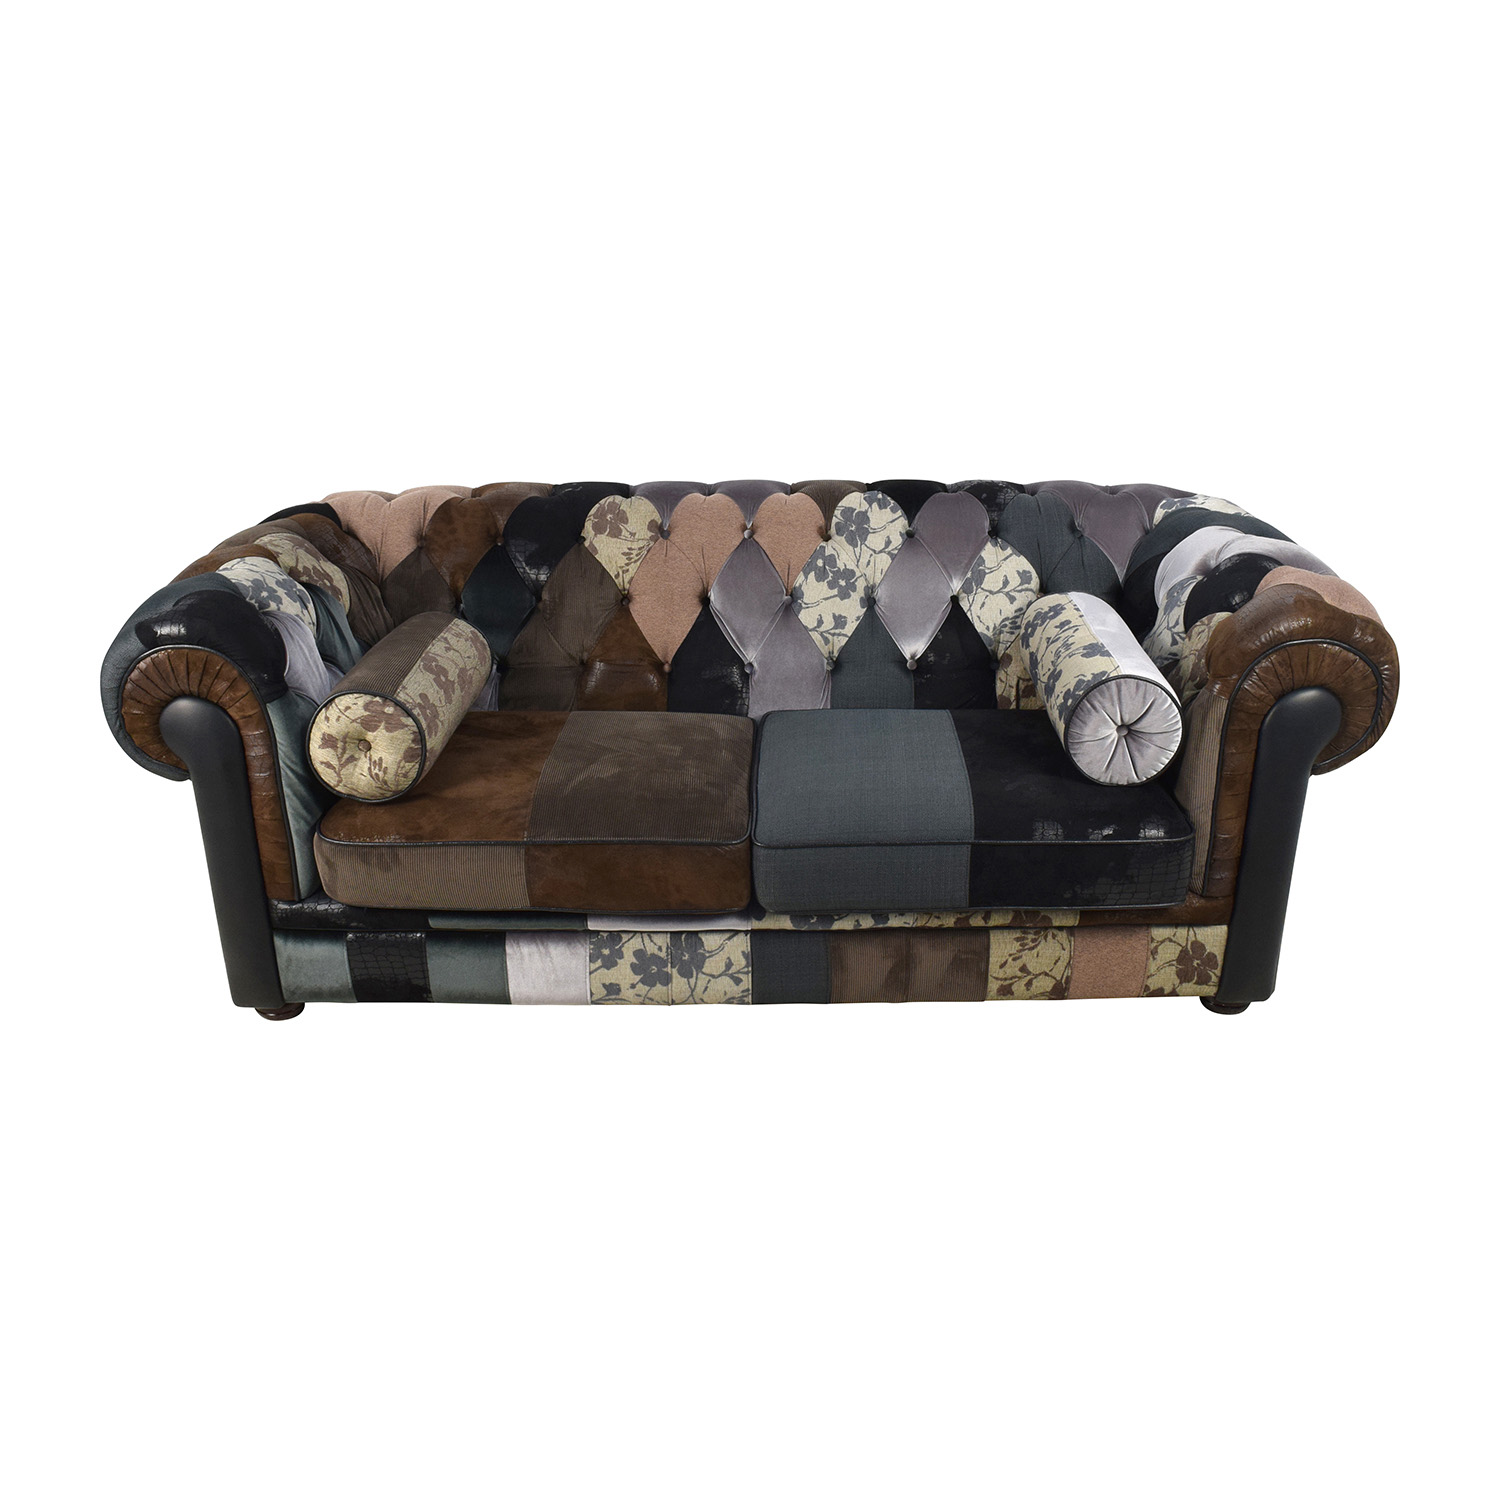 Patchwork Sofa 68 Off France And Son France And Son Egan Tufted